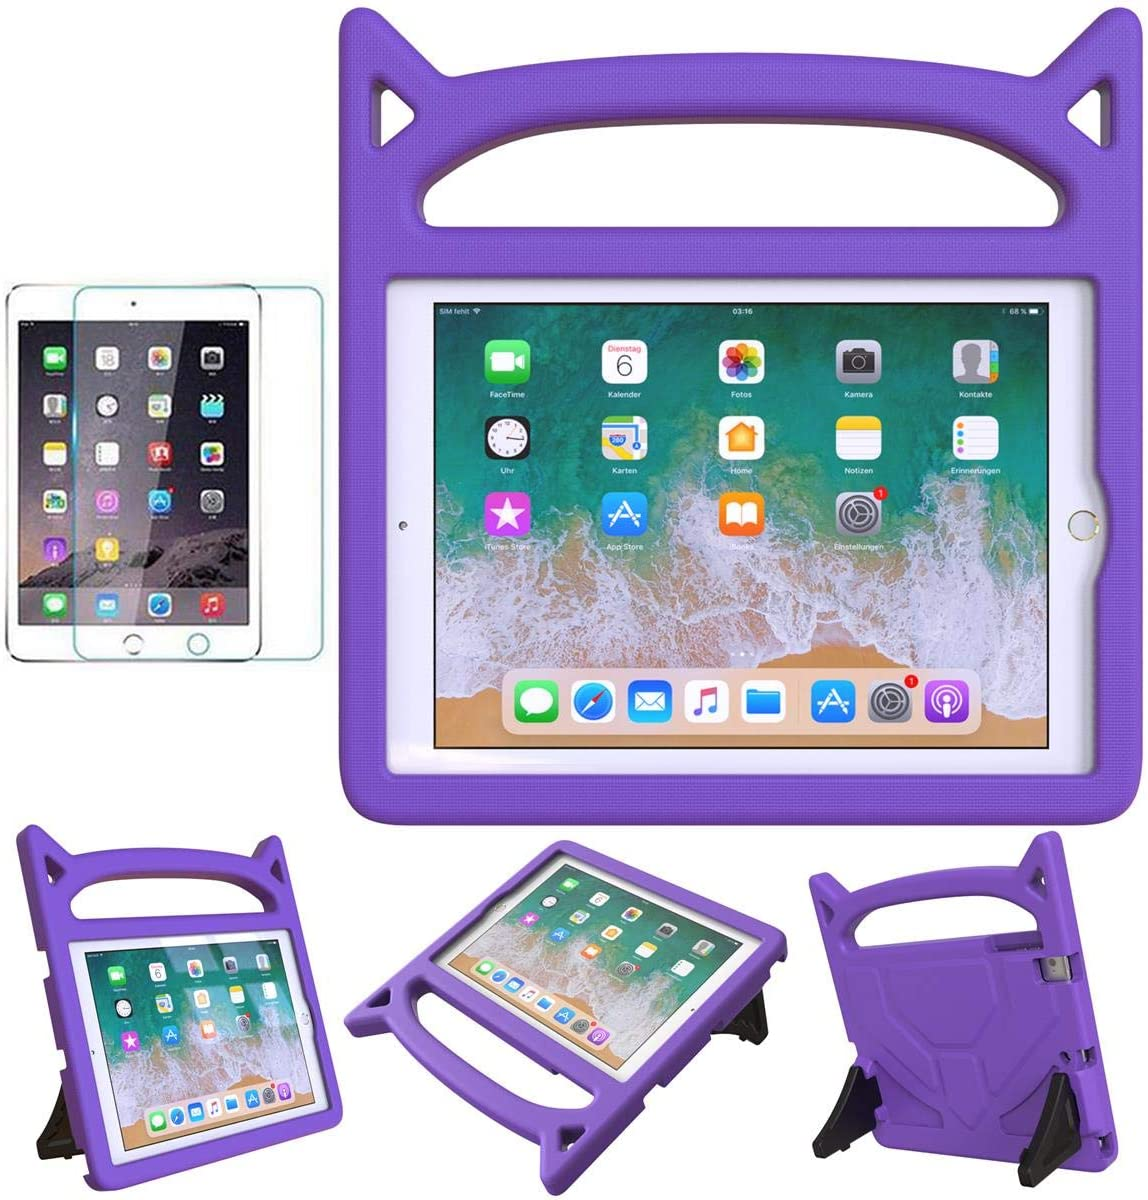 MOXOTEK Kids Case for iPad 9.7 2017/2018,iPad 5th/6th Generation Case,iPad Air 1/2 Case,iPad Pro 9.7 inch Case, Durable Shockproof Protective Handle Stand Bumper Case with Screen Protector, Purple